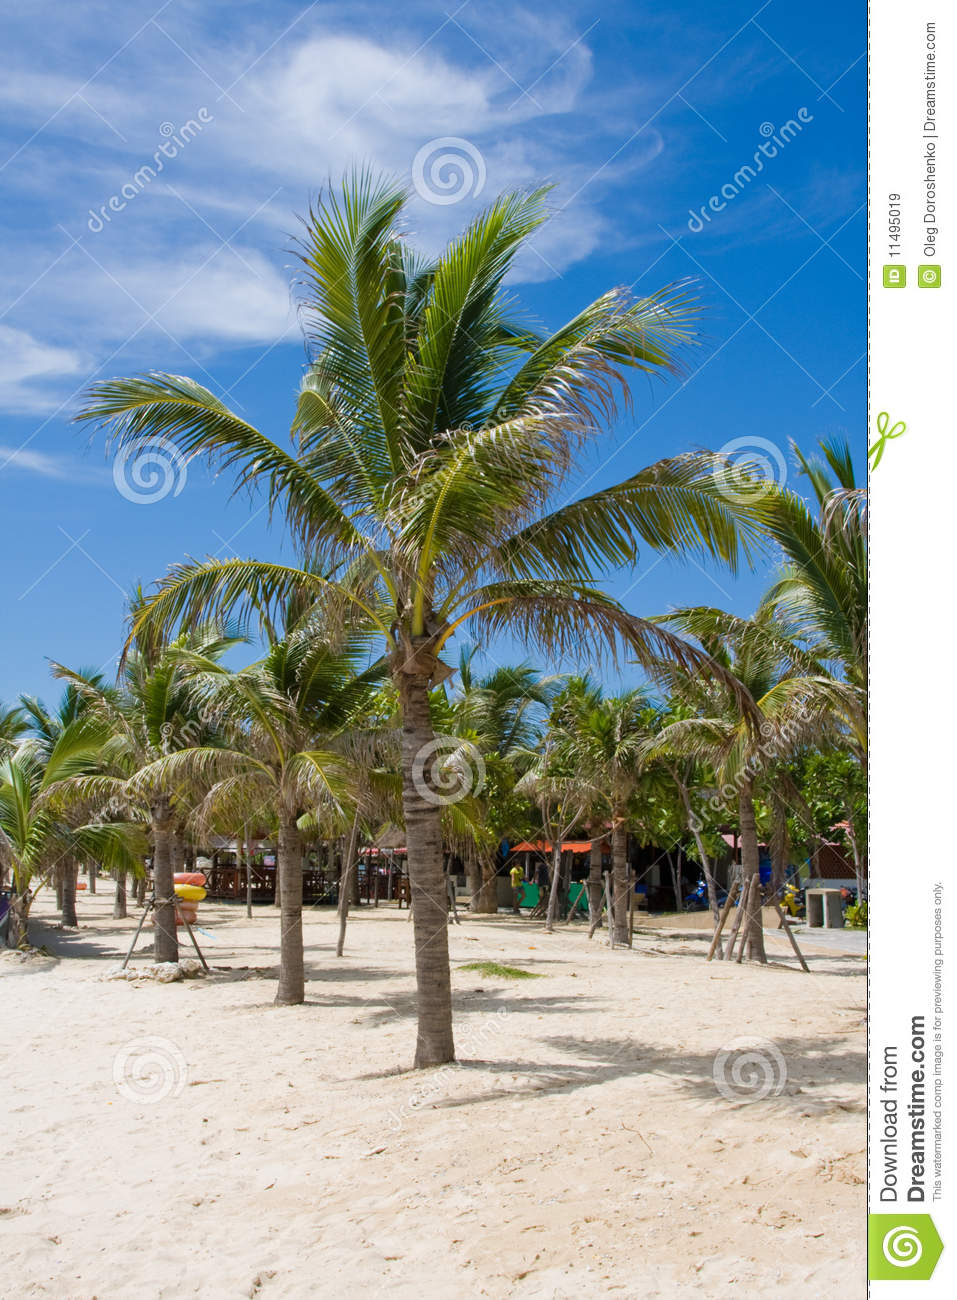 Palm Tree On The Beach.Thailand . Stock Image